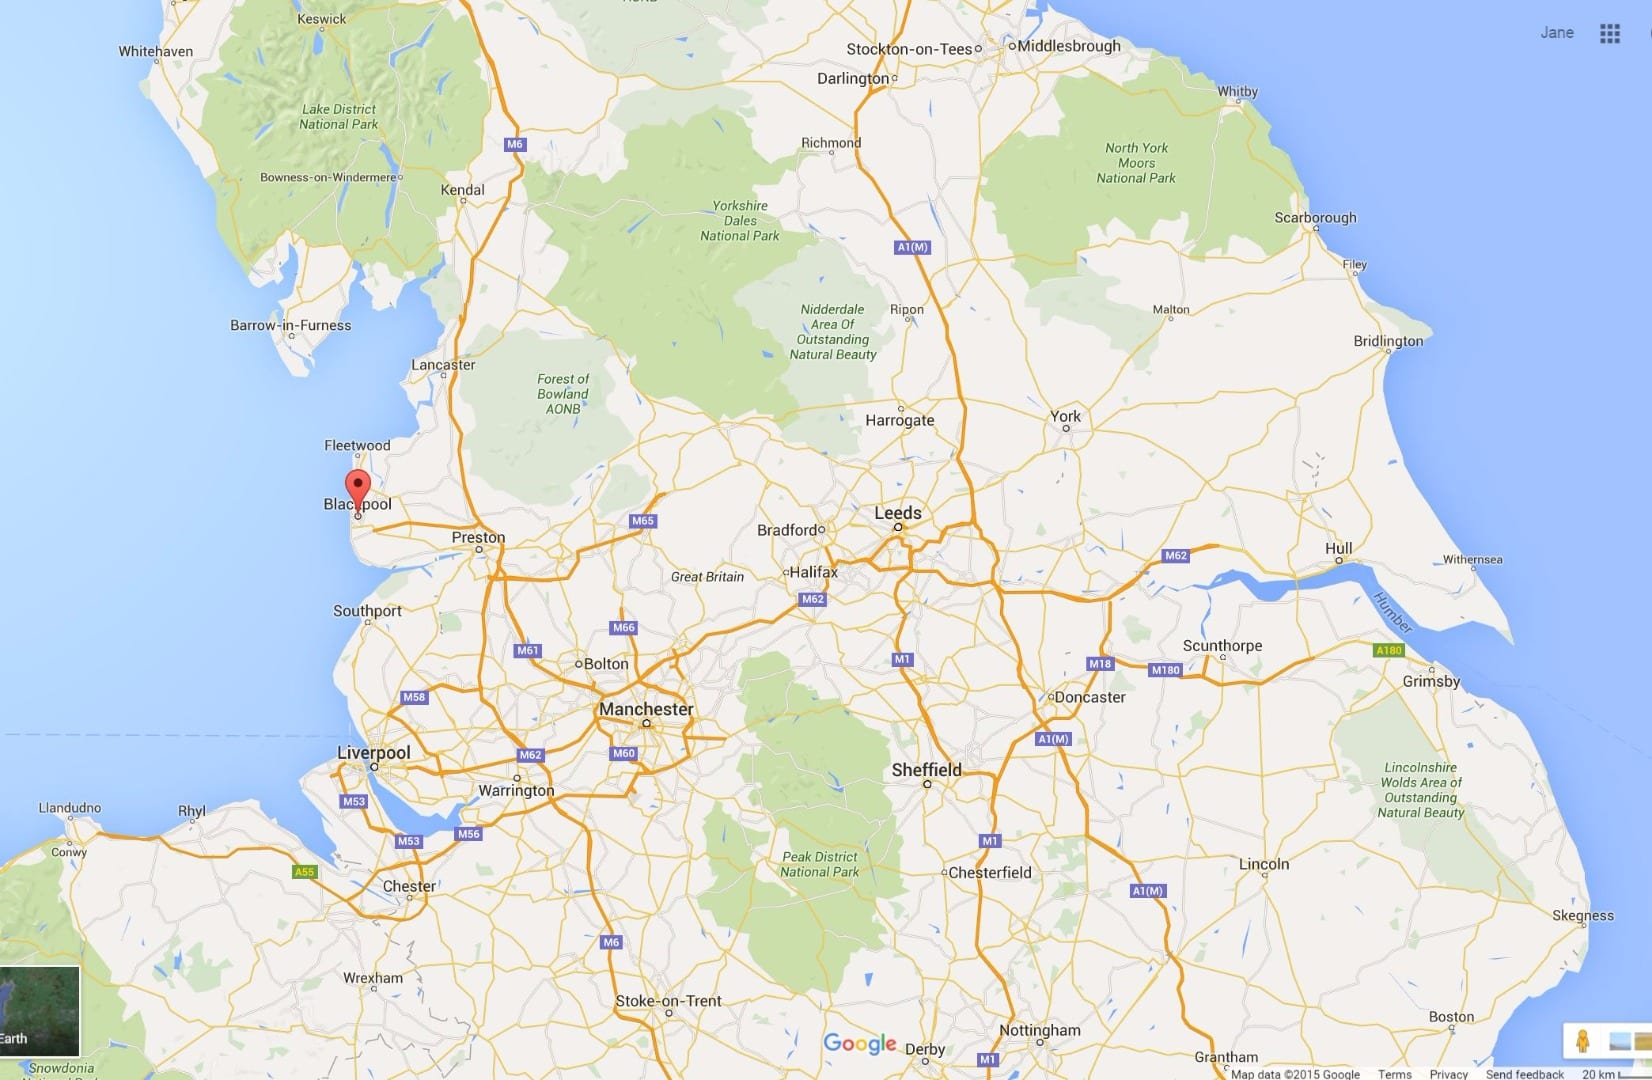 North West of England: Google map